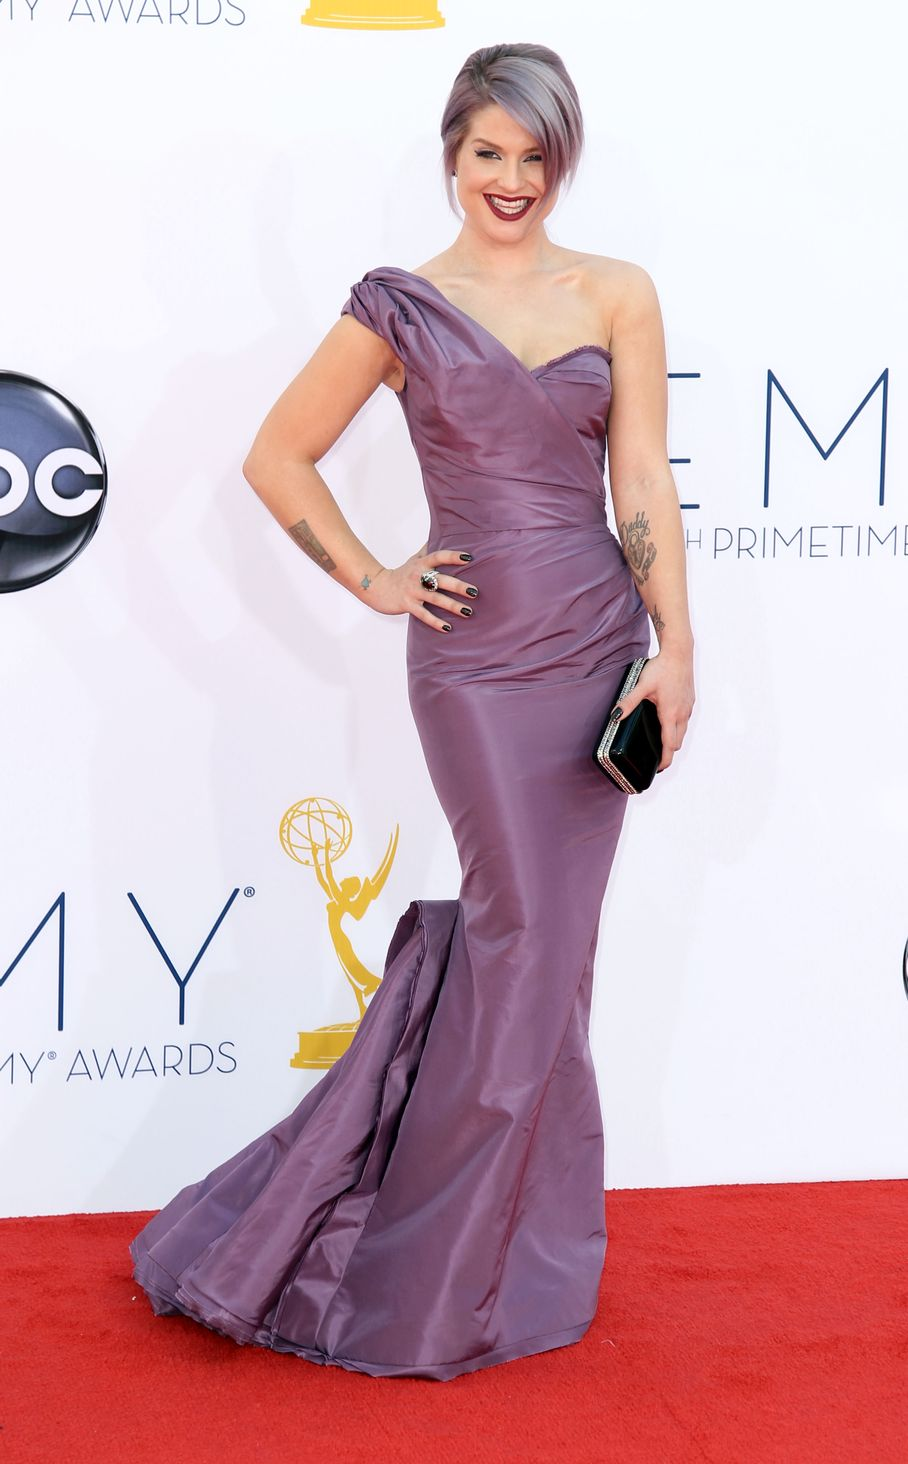 Kelly Osbourne - 2012 Emmy Awards, Red Carpet Looks